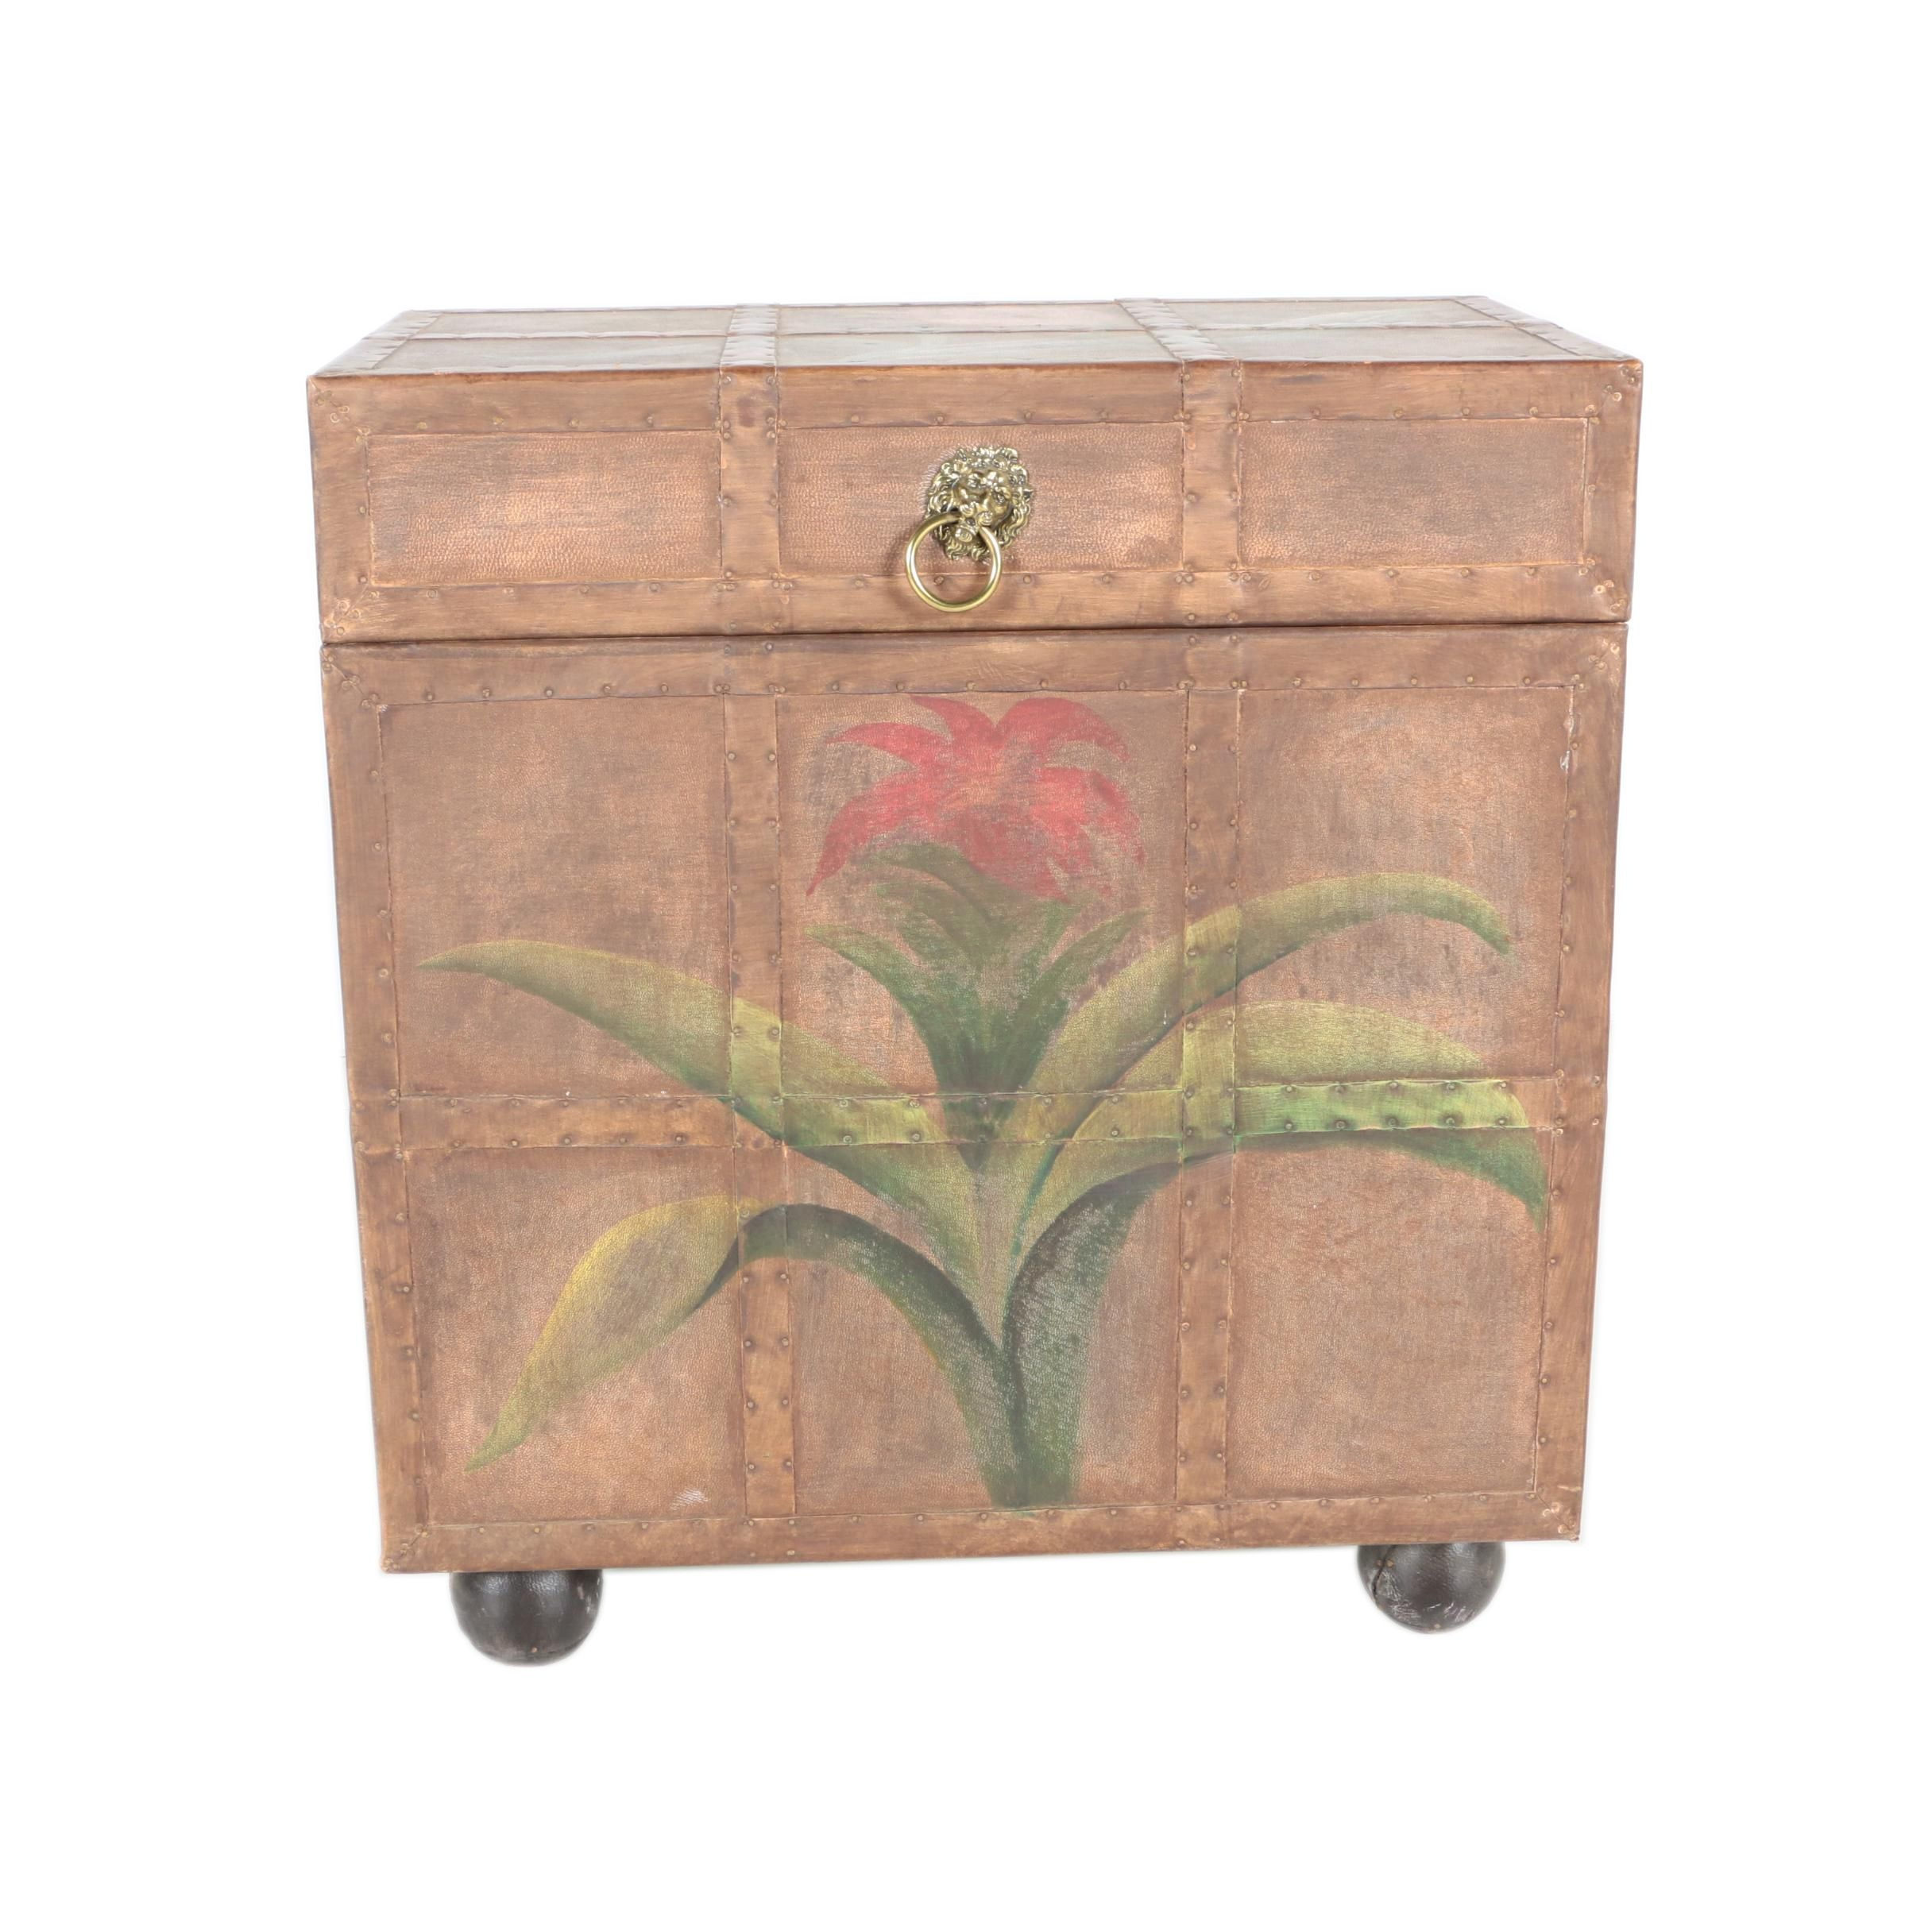 Decorative Trunk With a Floral Design